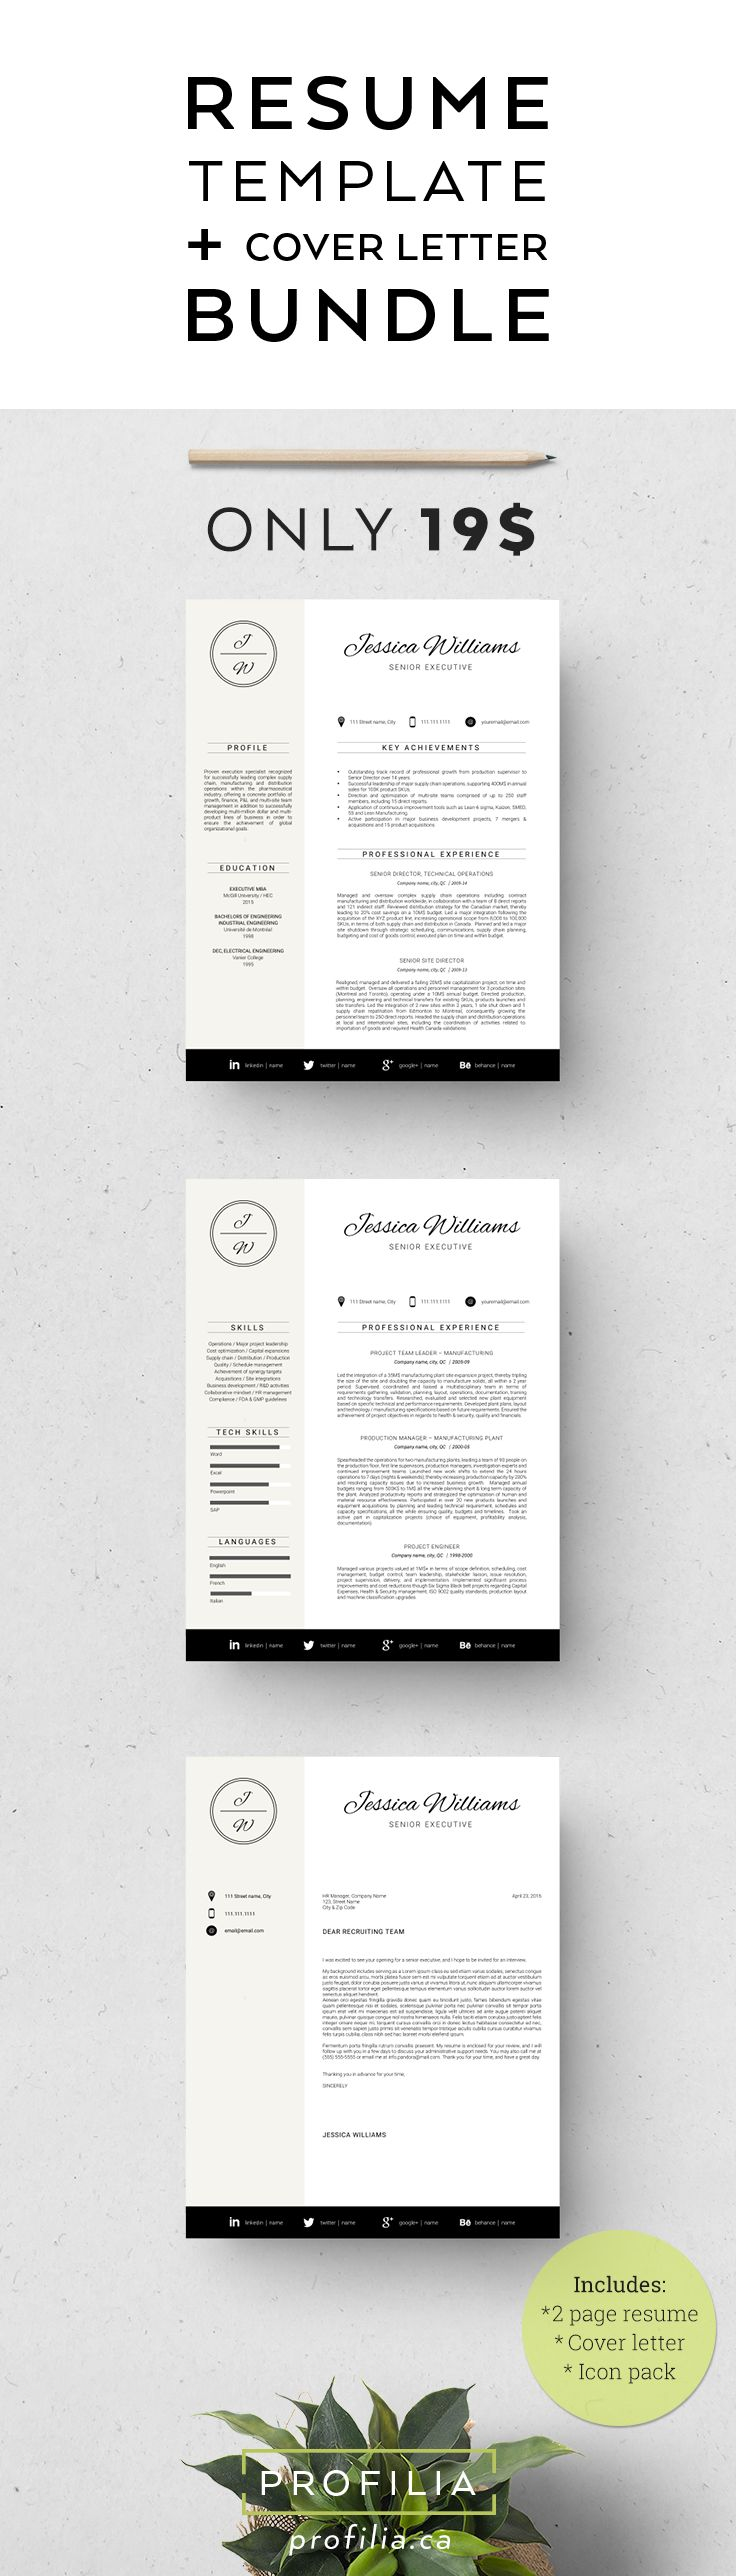 Cute 1 Page Resume Format Free Download Small 10 Envelope Template Round 15 Year Old Resume Sample 18th Invitation Templates Old 1and1 Templates Brown2 Binder Spine Template The Best CV \u0026 Resume Templates: 50 Examples \u2013 Ok Huge